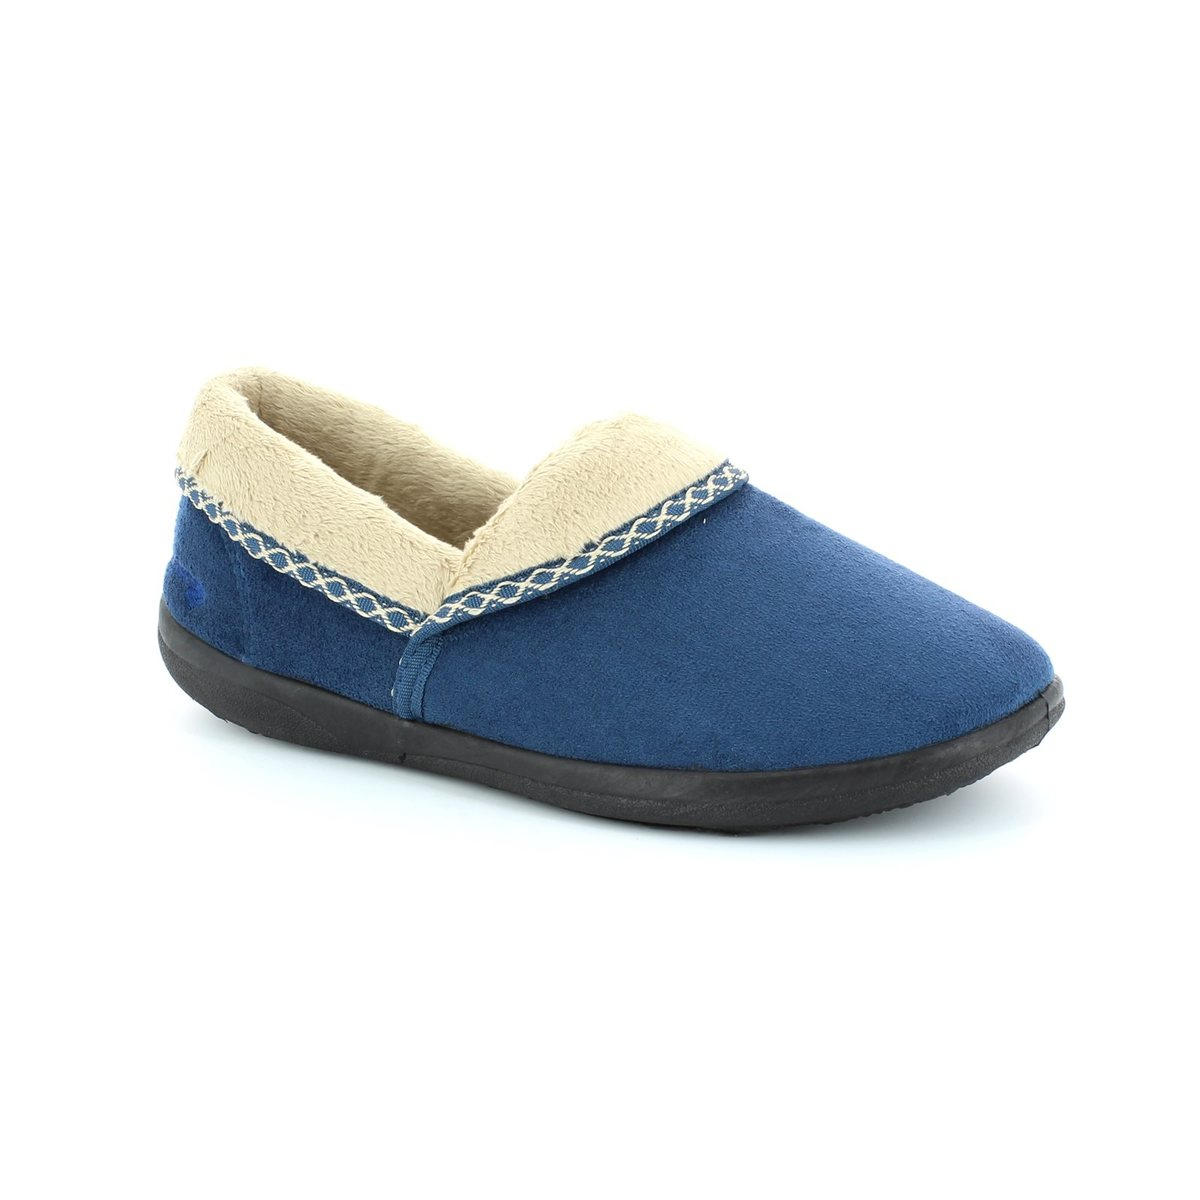 cb3d3ee1d29f7 Padders Slippers - Blue - 460/29 MELLOW 2E FIT